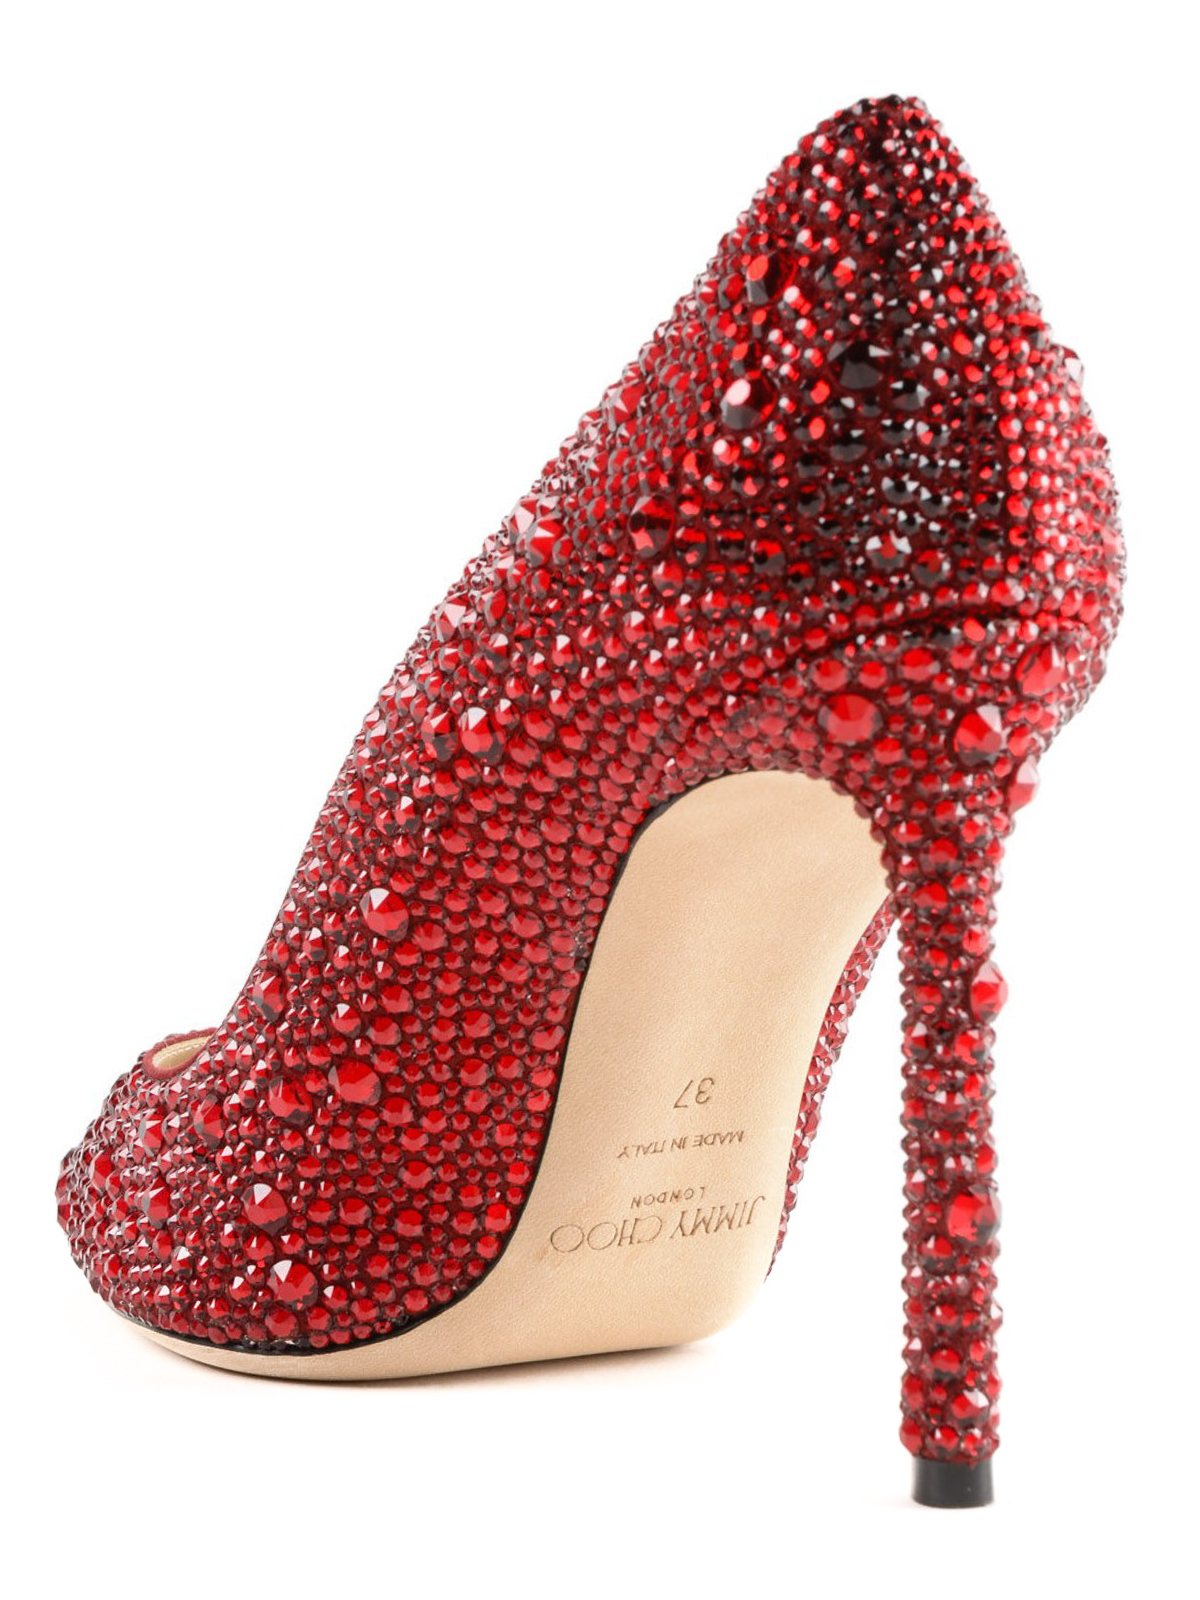 ce795ac0d39 Jimmy Choo - Romy red crystal pointy suede pumps - court shoes ...